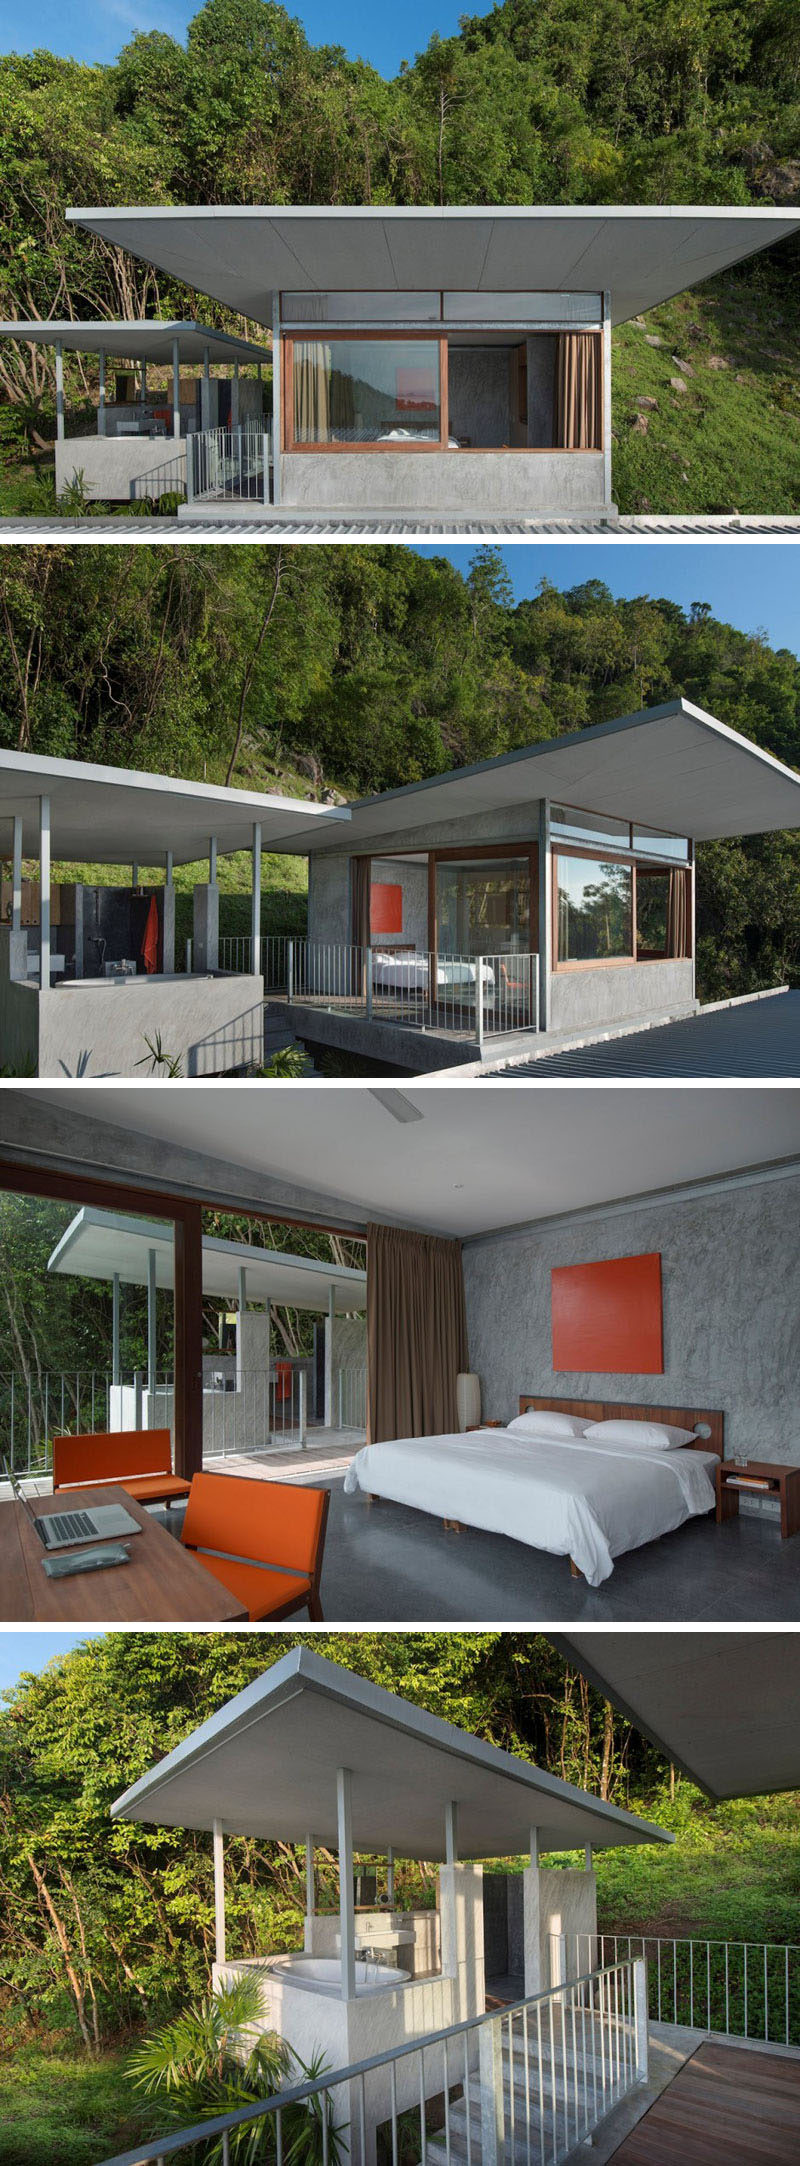 At the top of this house is a penthouse bedroom suite, that has its own outdoor bathroom pavilion.